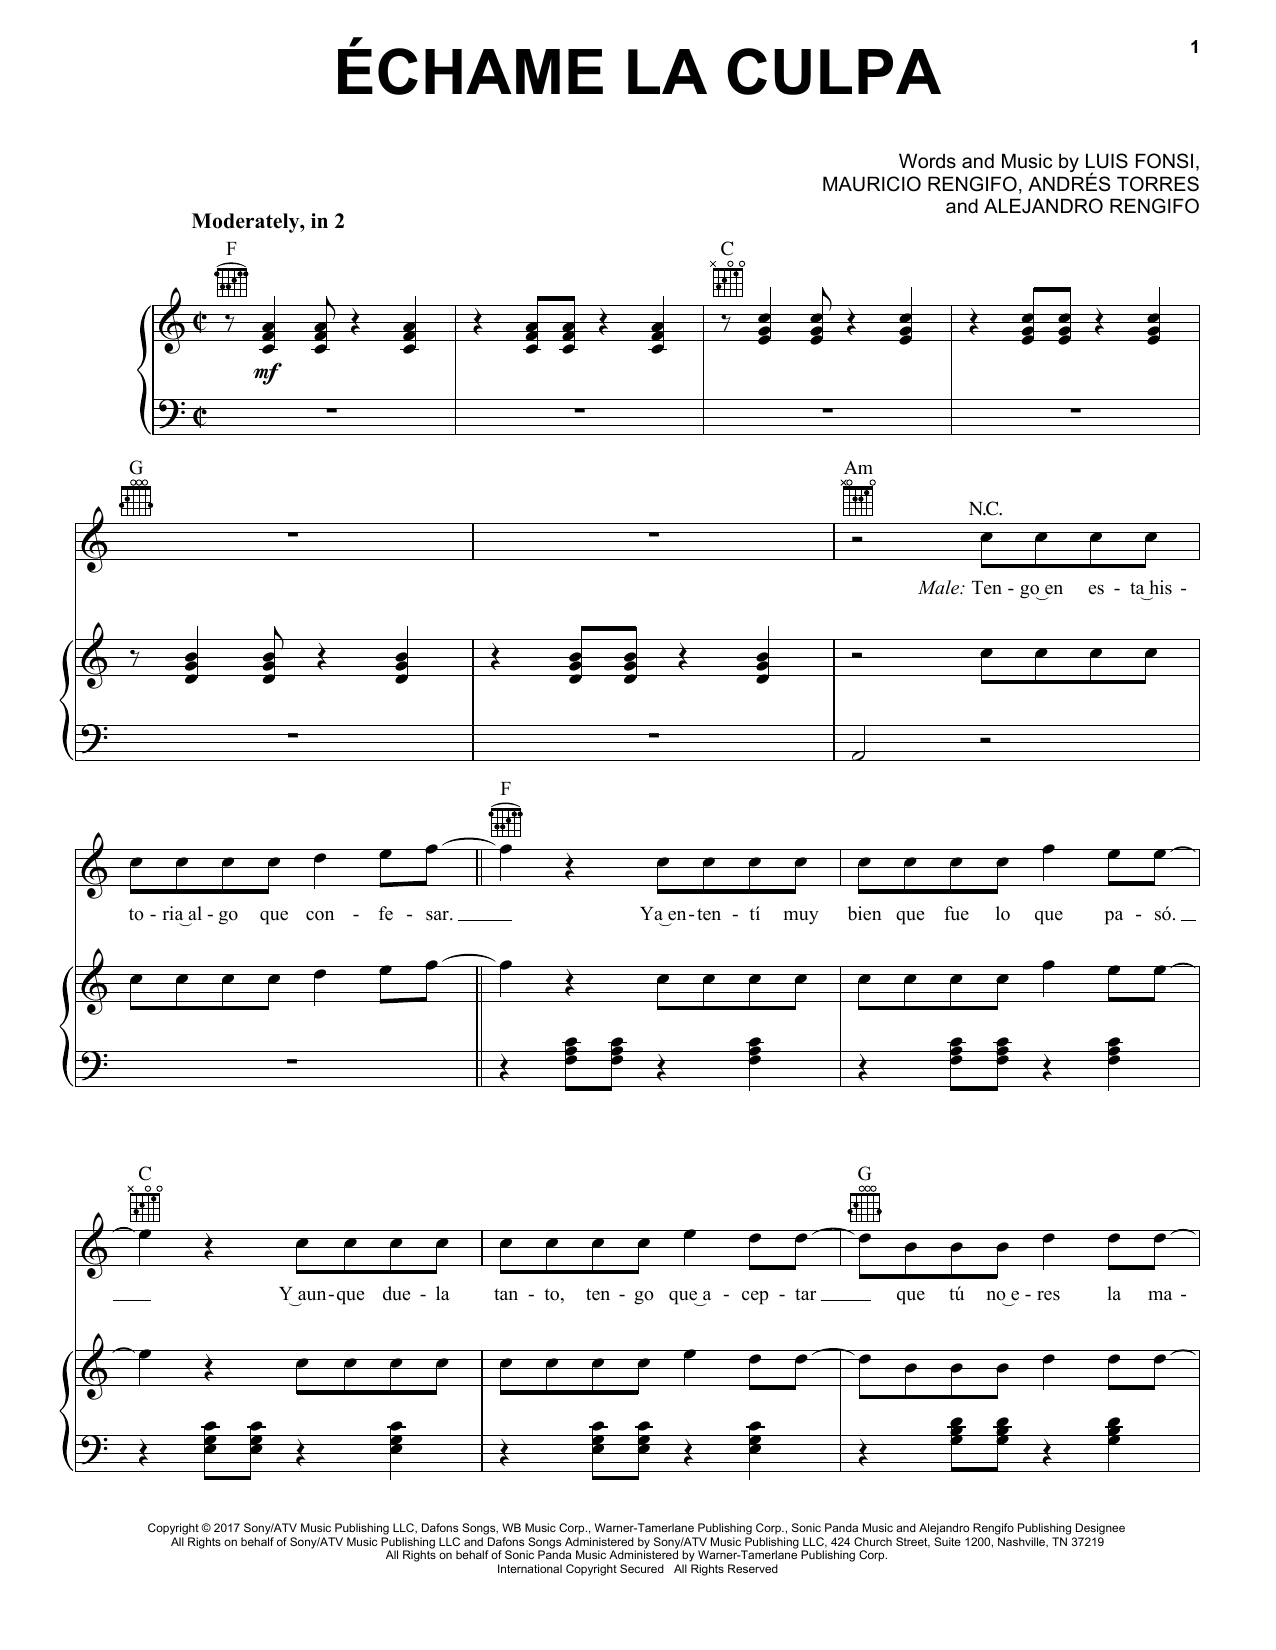 Luis Fonsi and Demi Lovato Echame La Culpa sheet music notes and chords